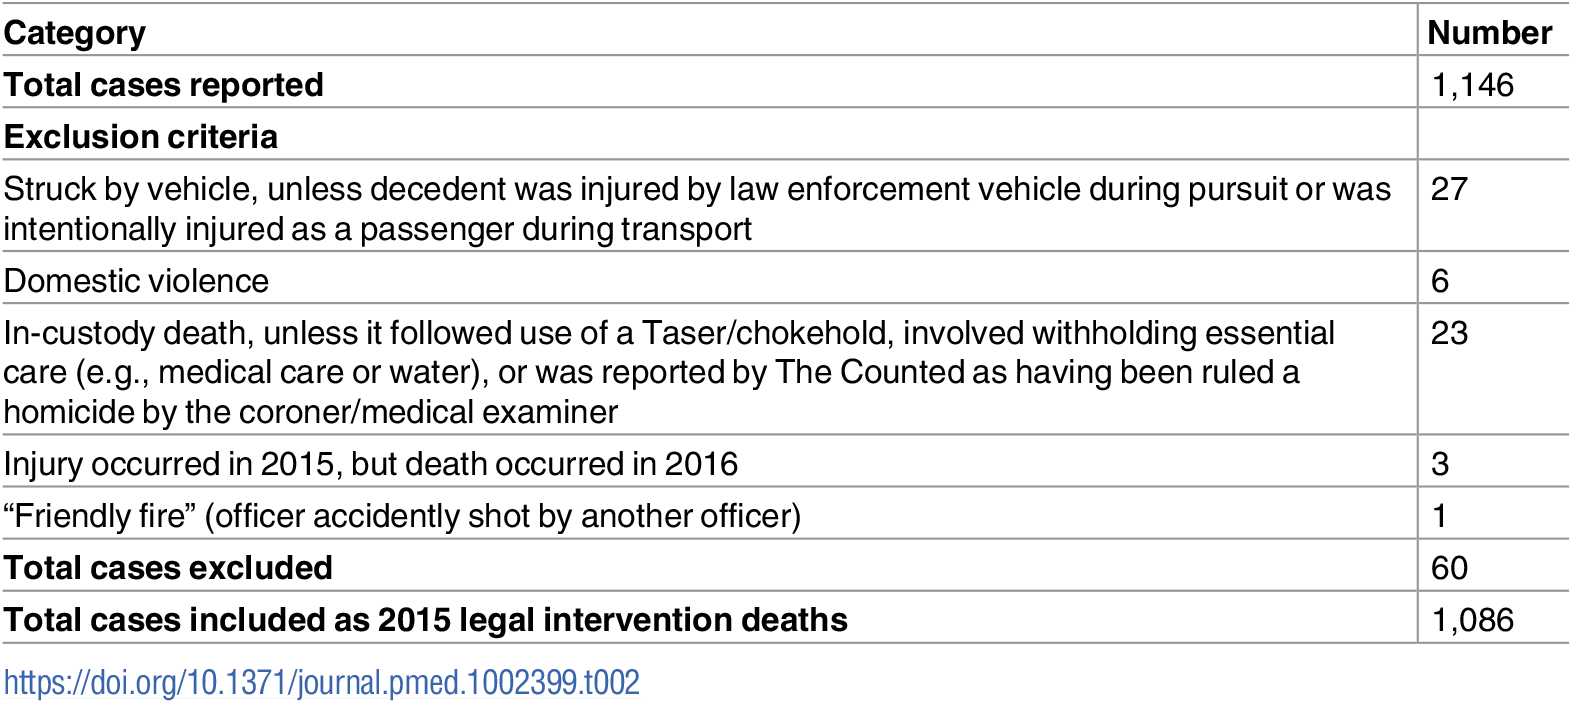 Cases included and excluded as legal intervention deaths from The Guardian's The Counted database of law-enforcement-related deaths (US, 2015).